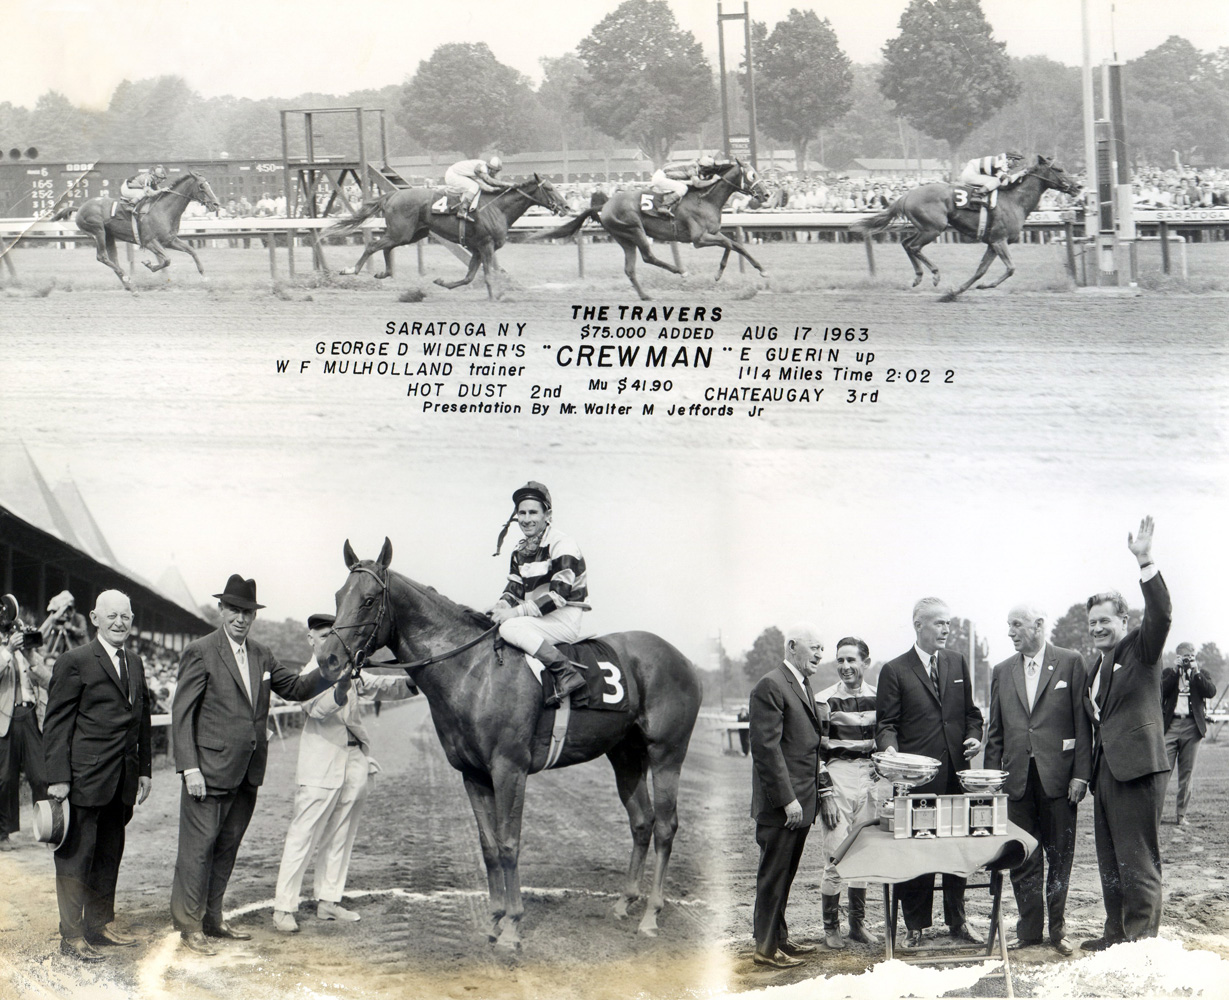 Win composite photograph for the 1963 Travers Stakes at Saratoga won by Crewman (Eric Guerin up), trained by Bert Mulholland (NYRA/Museum Collection)